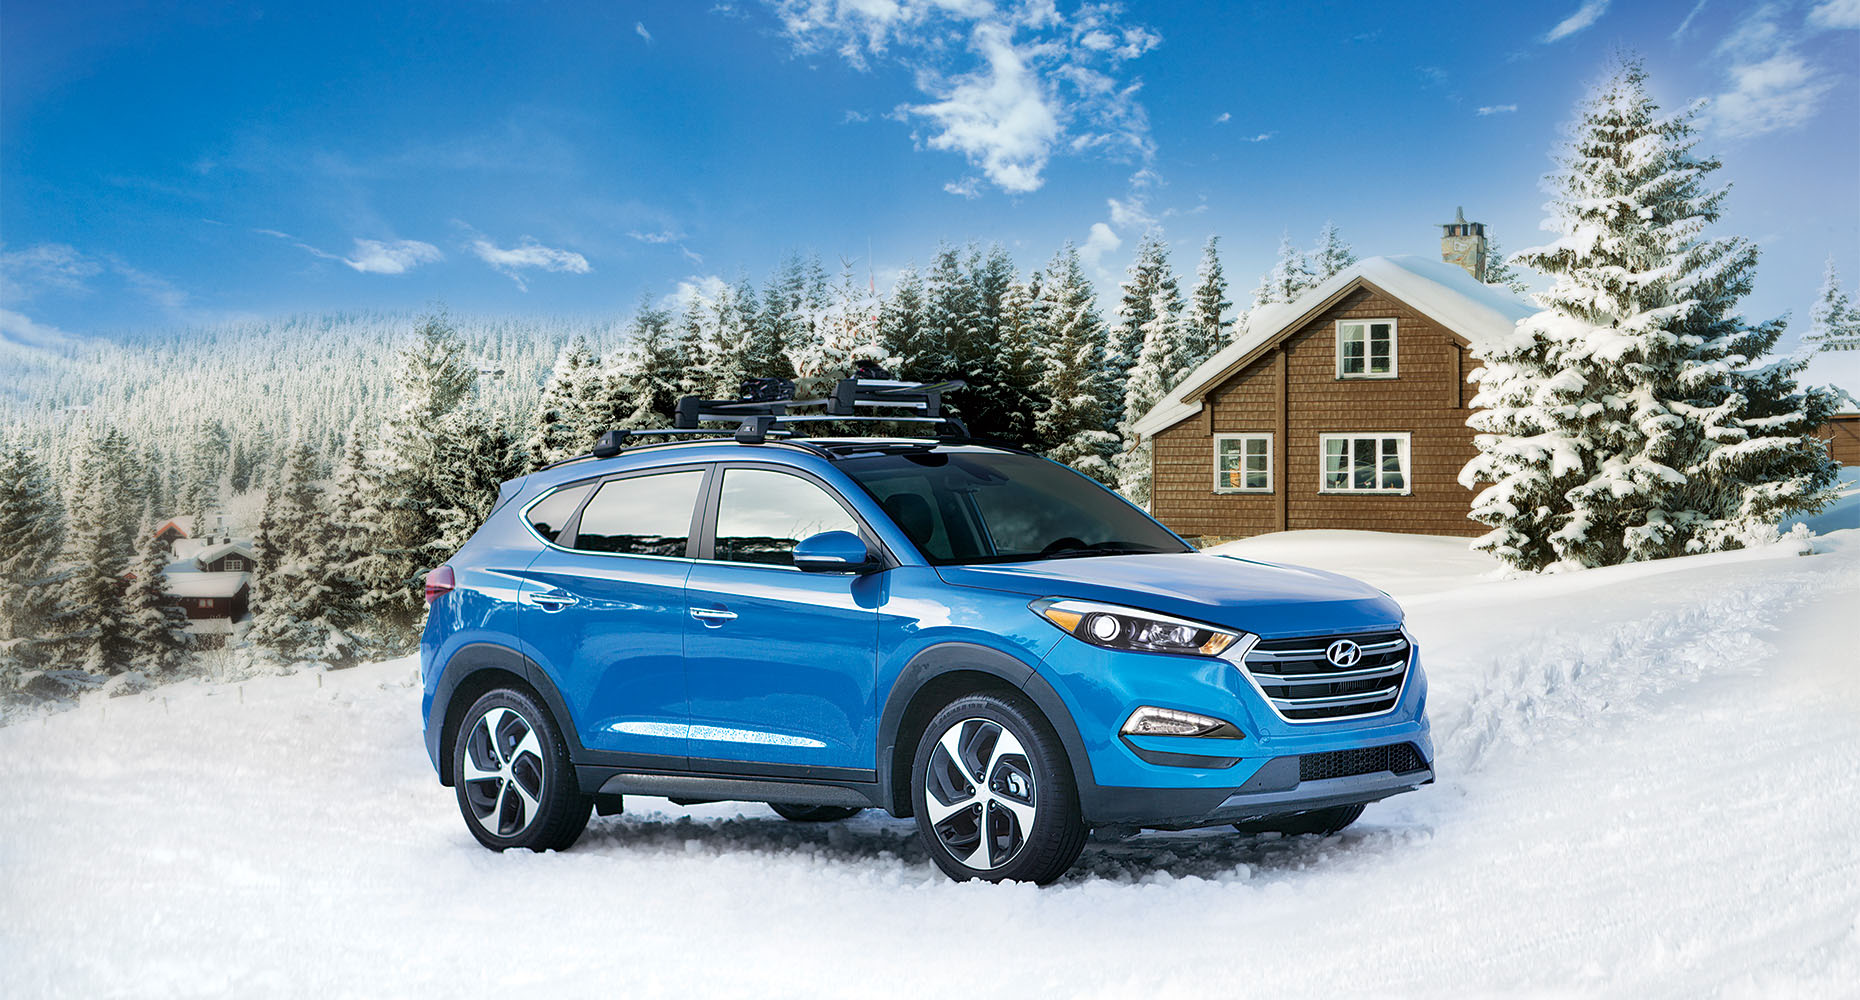 Discover the 2018 Hyundai Tucson at Pathway Hyundai in Ottawa ON